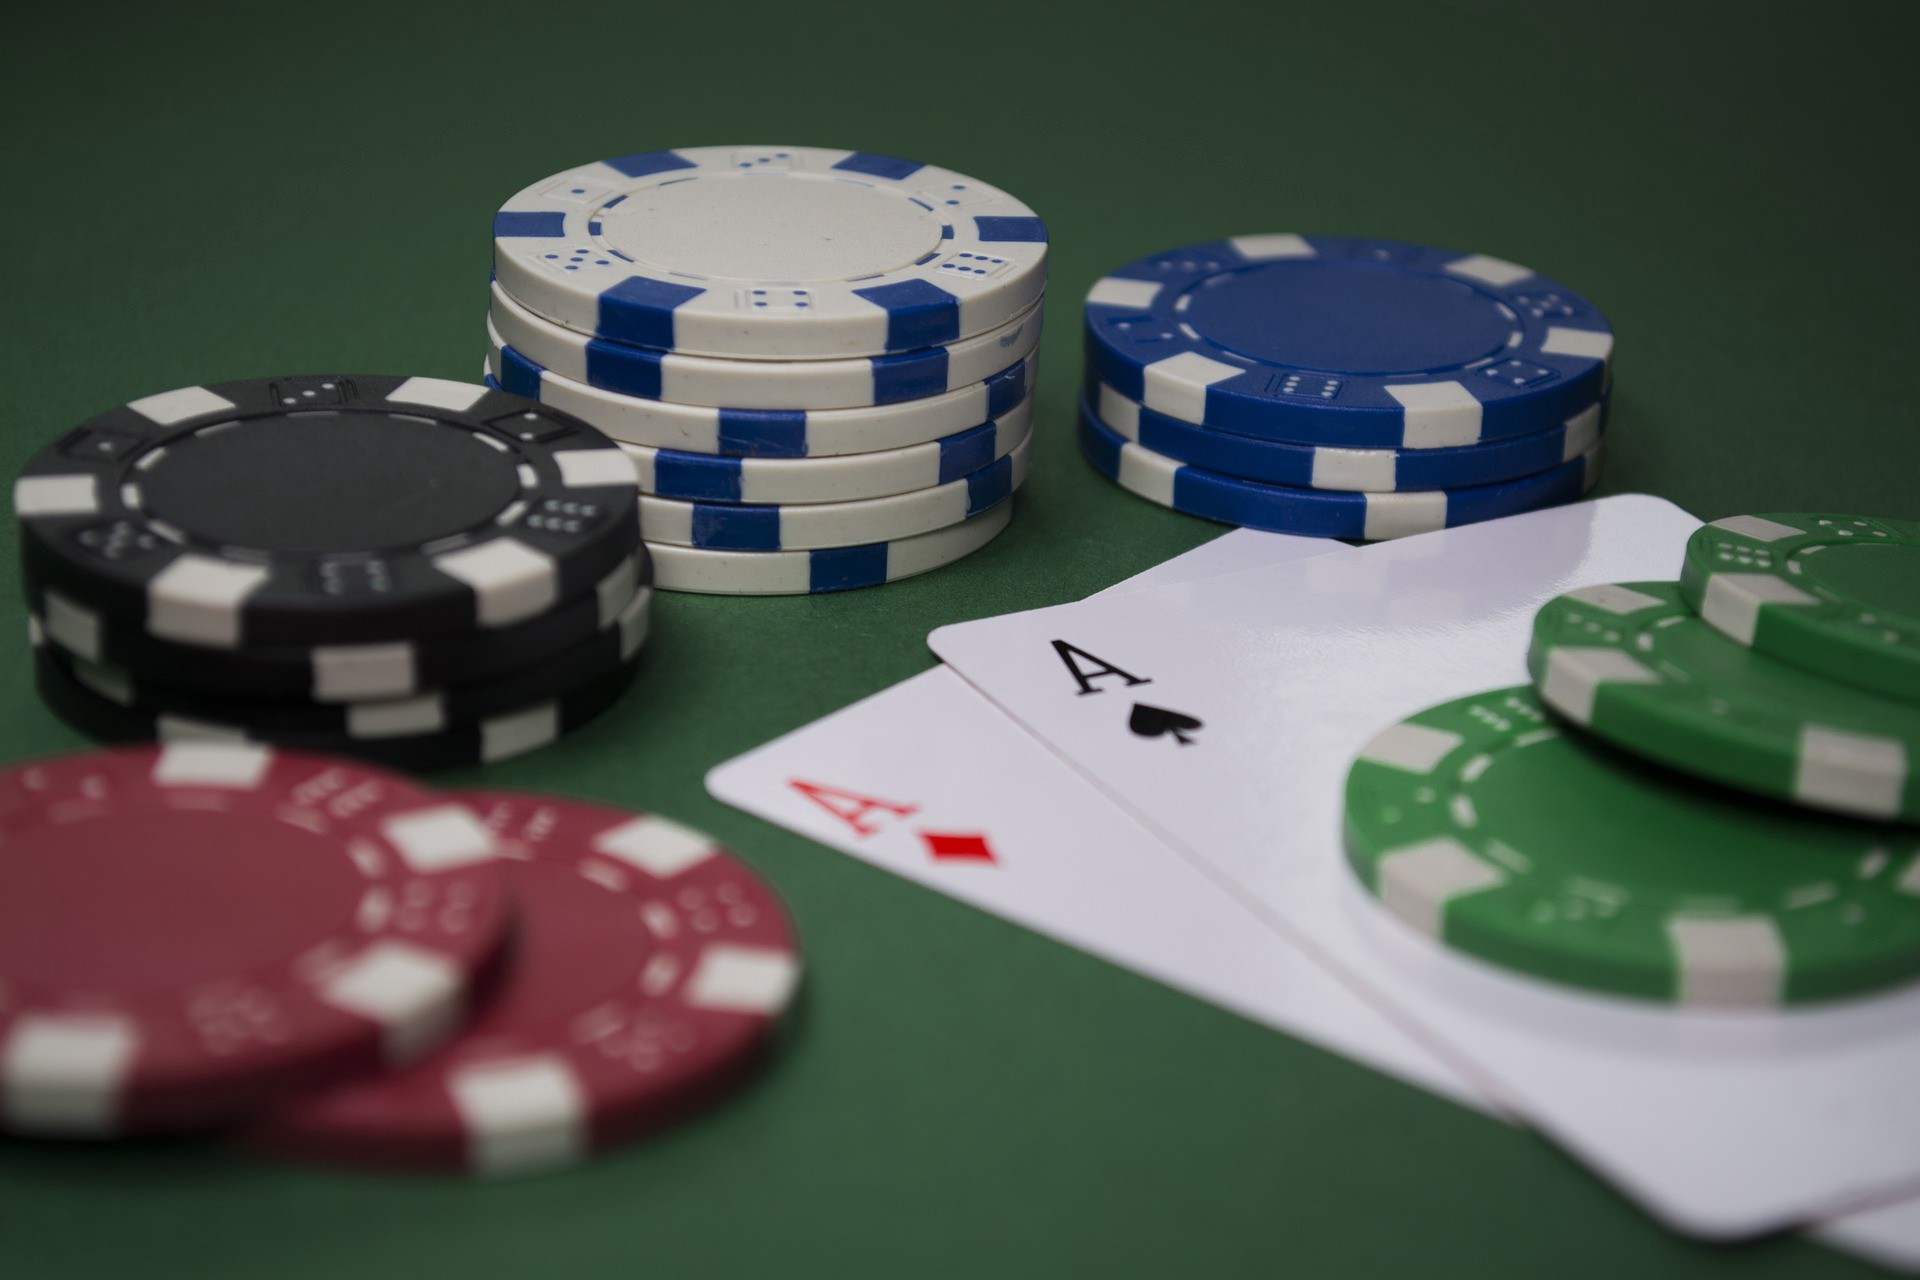 How to win in poker